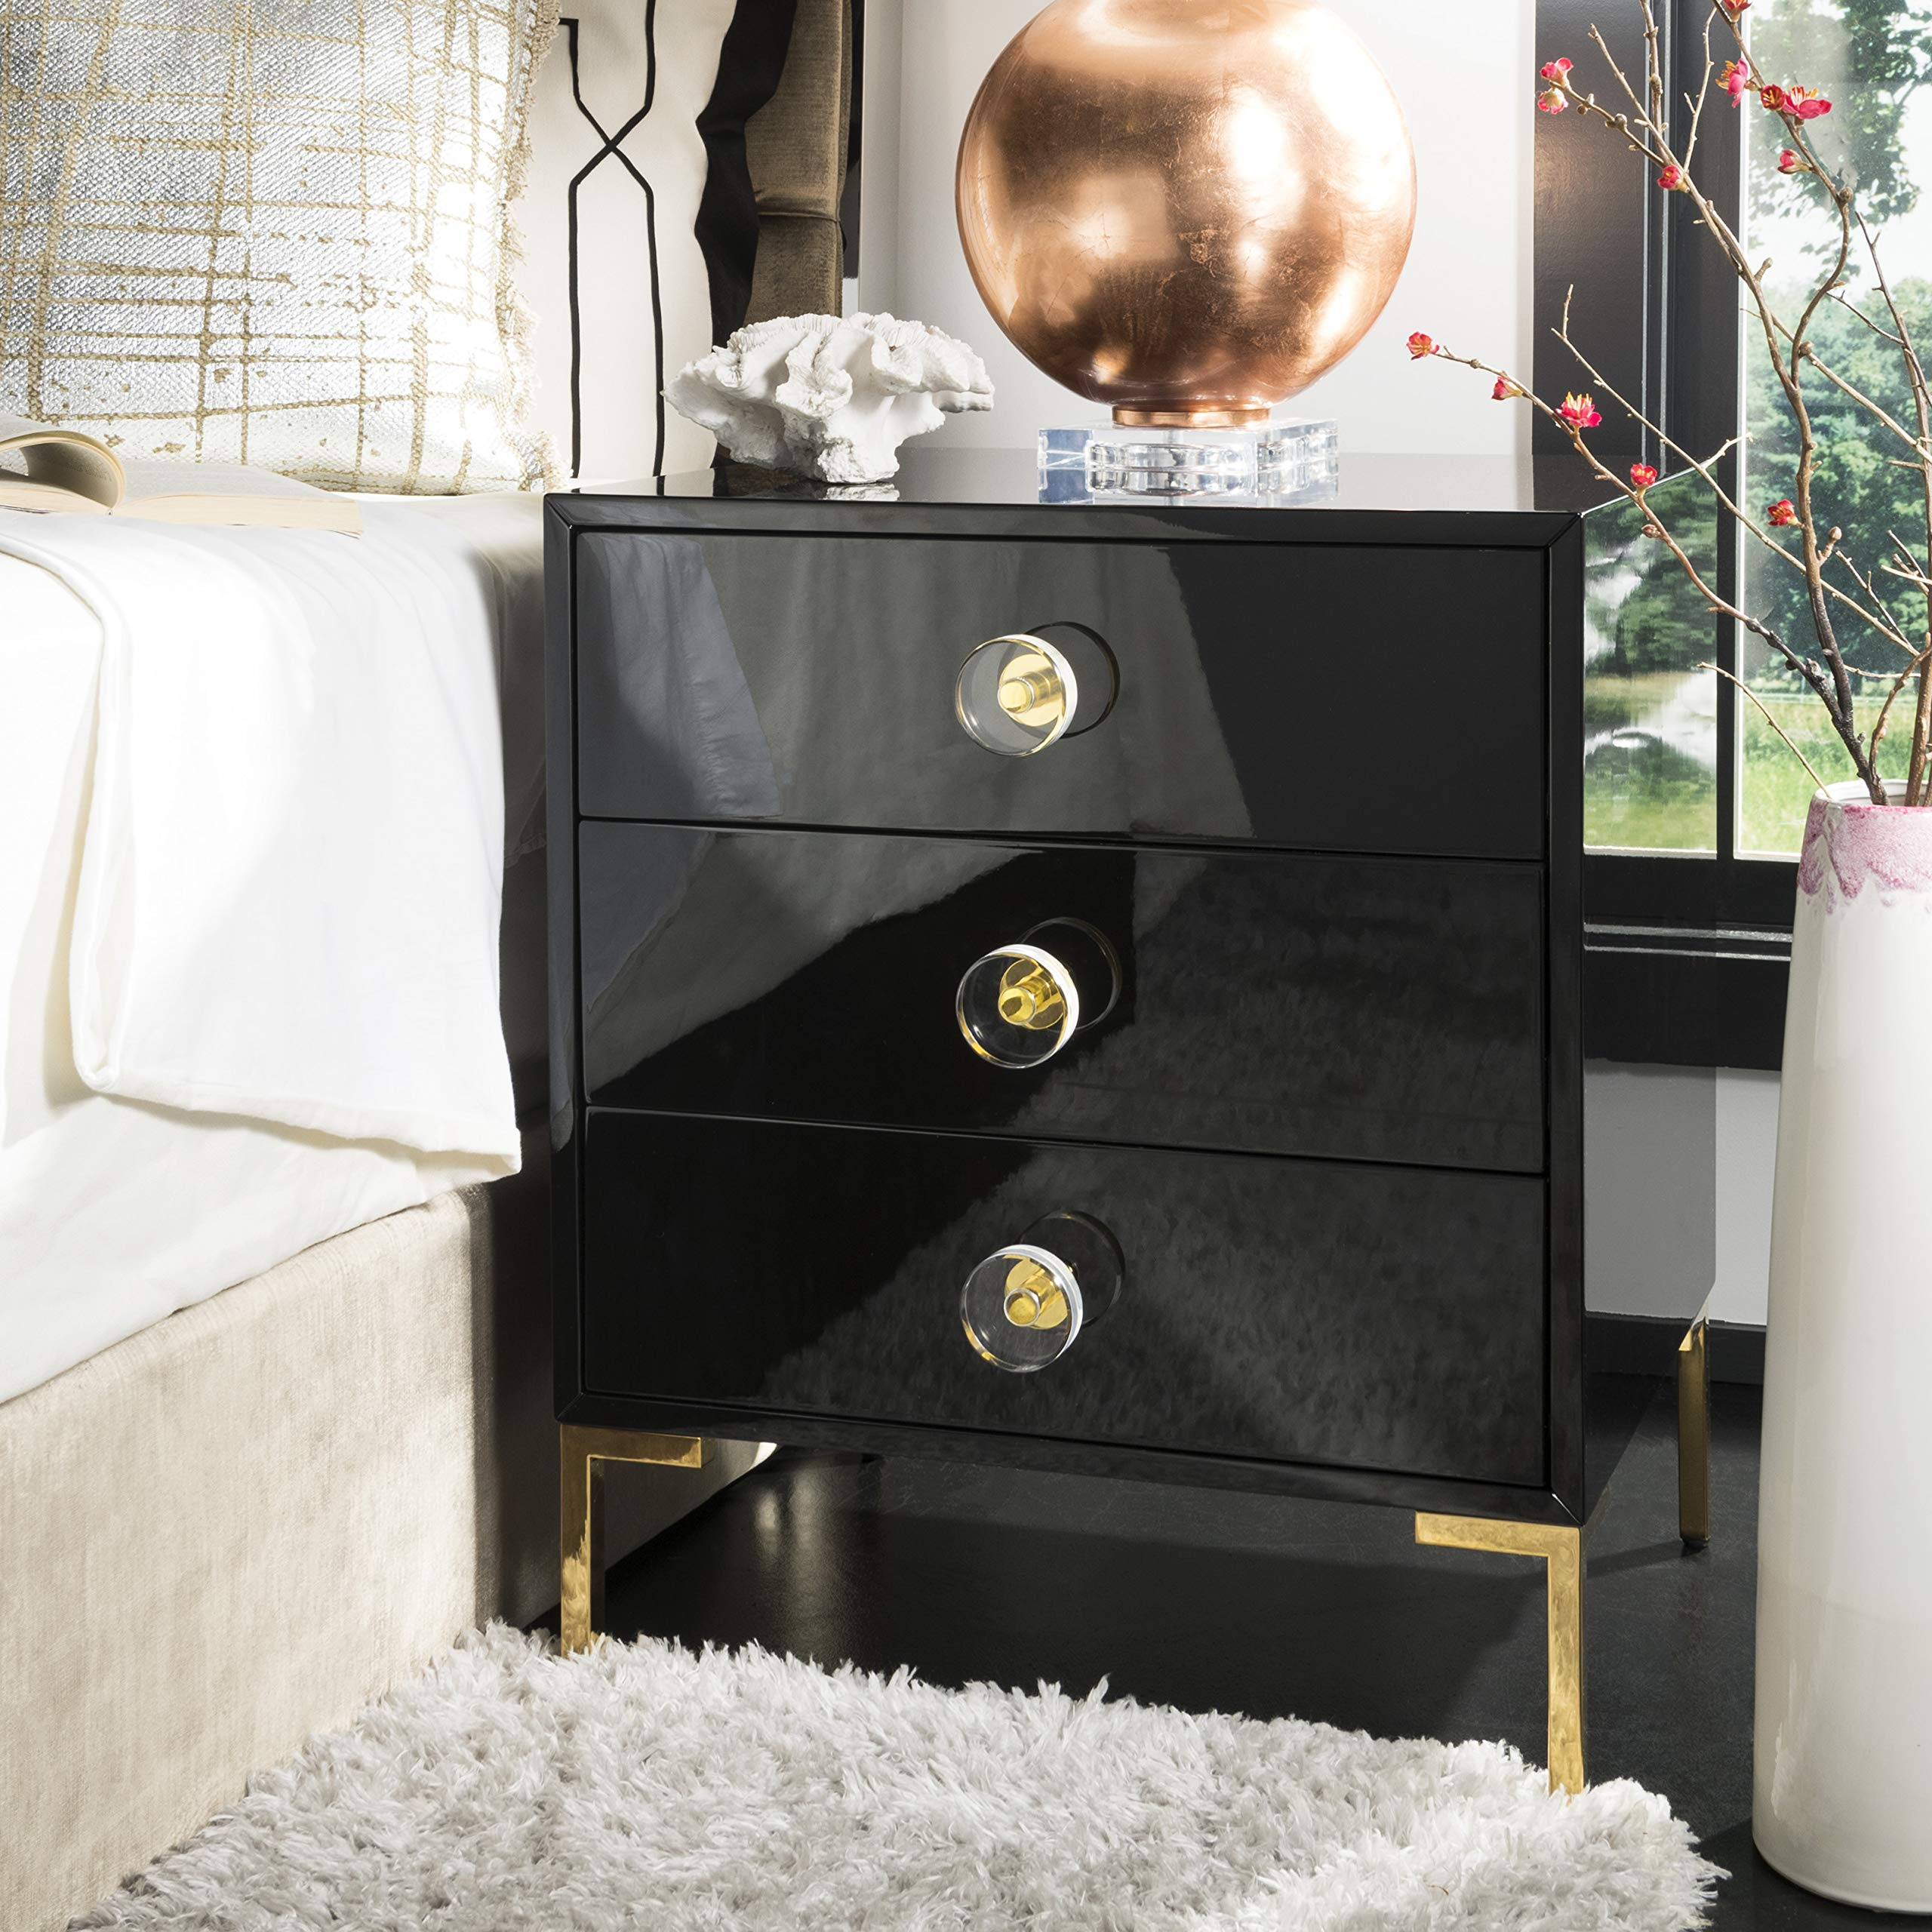 Safavieh SFV3559A Home Collection Lucian 3-Drawer Side Table, Black/Brass by Safavieh